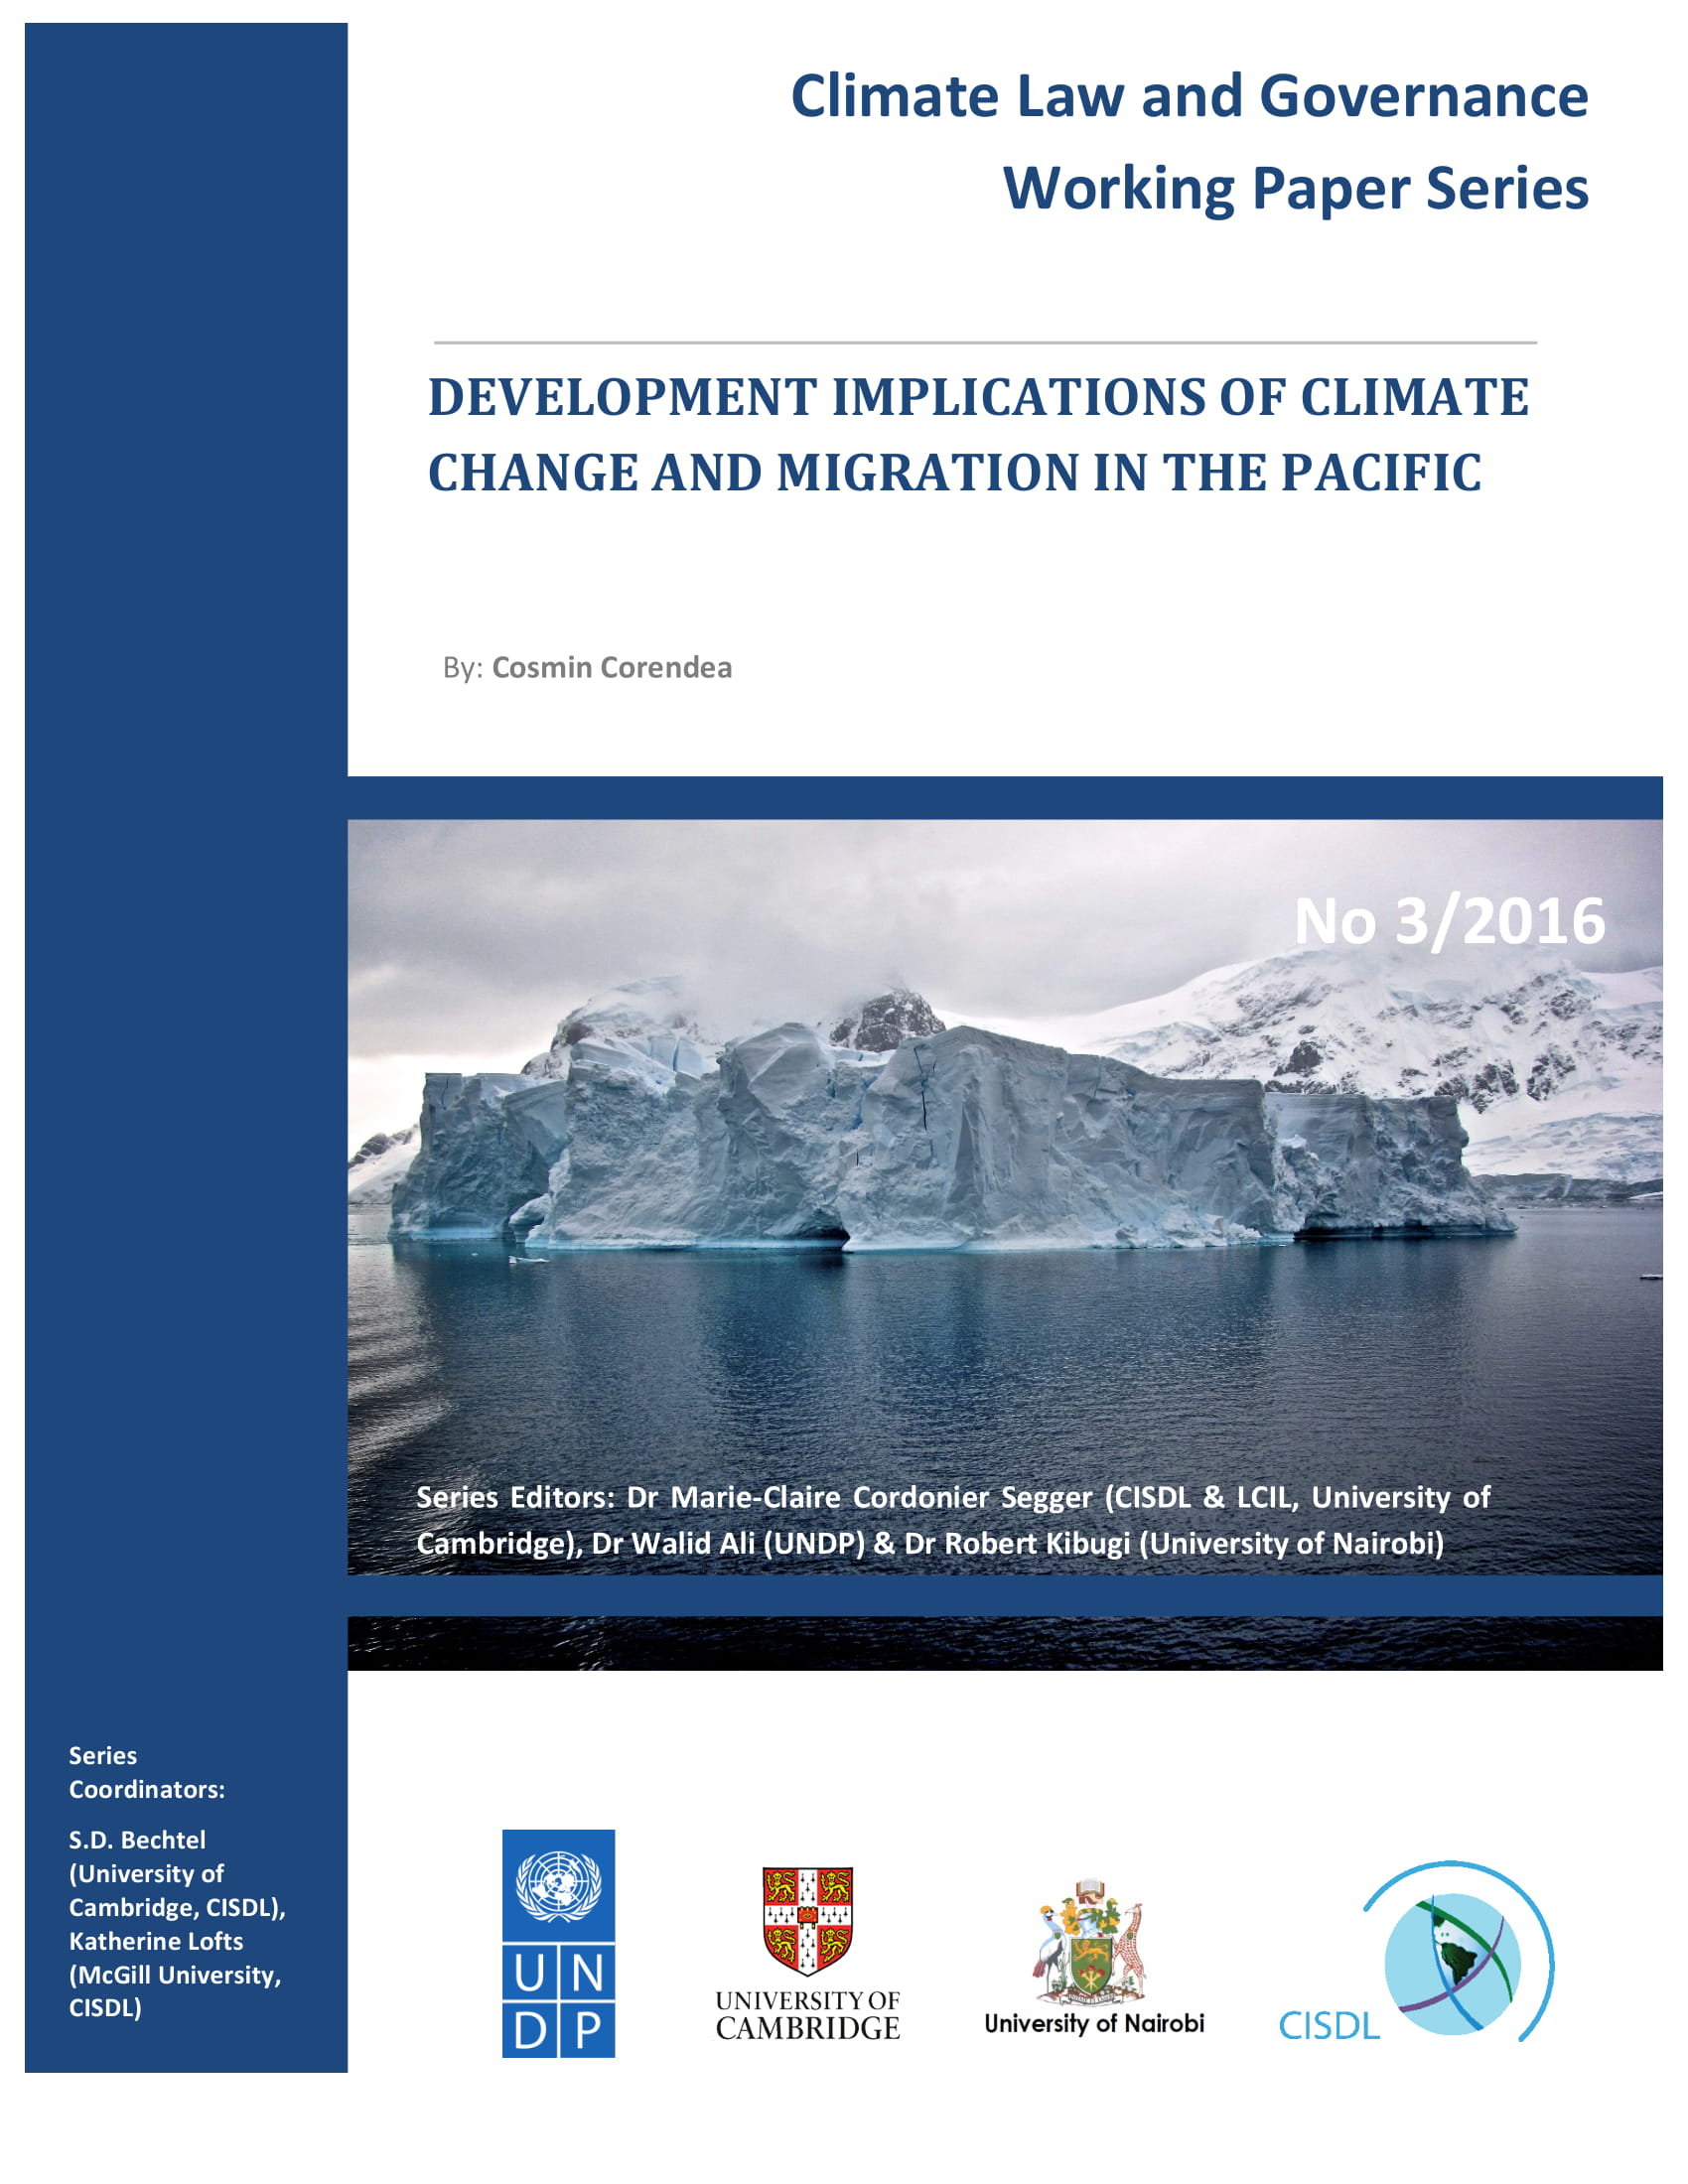 Development Implications Of Climate Change And Migration In The Pacific